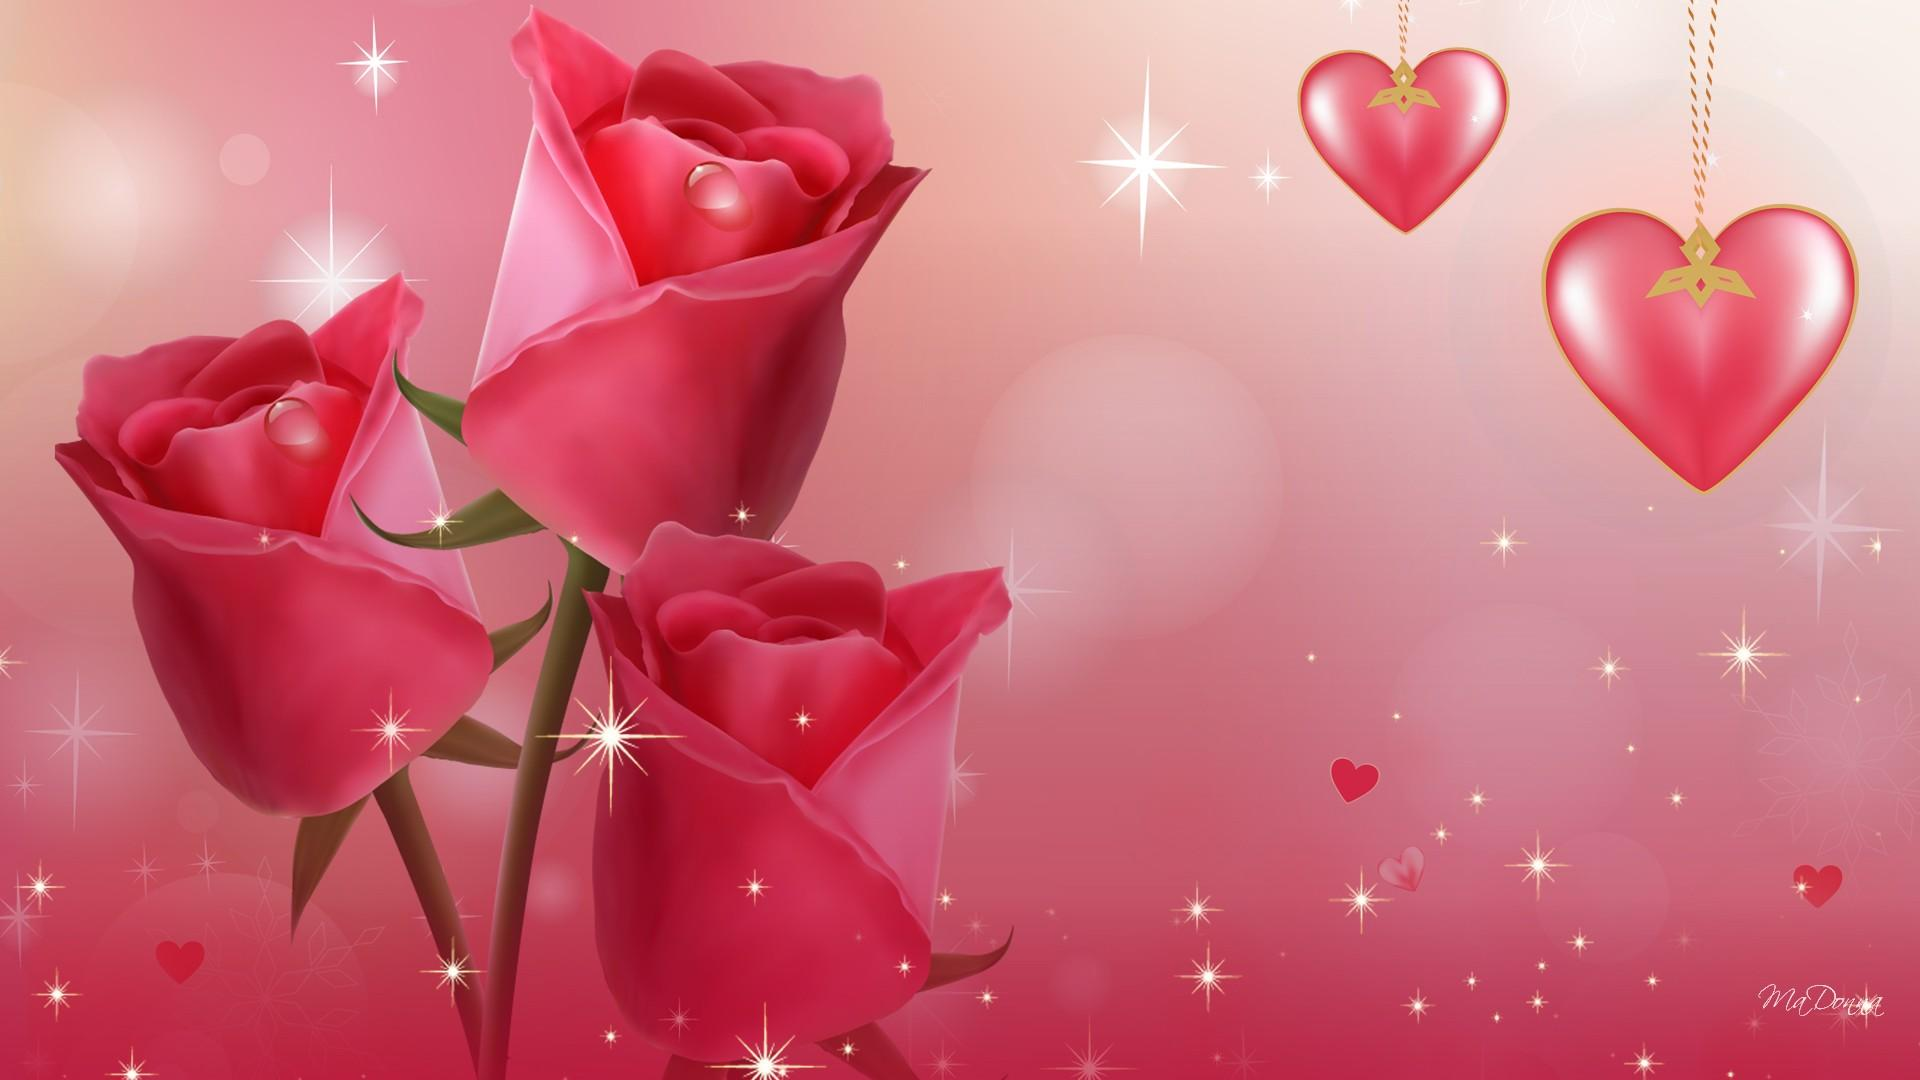 Beautiful Love Wallpaper For Desktop : Beautiful Love Wallpaper HD - WallpaperSafari